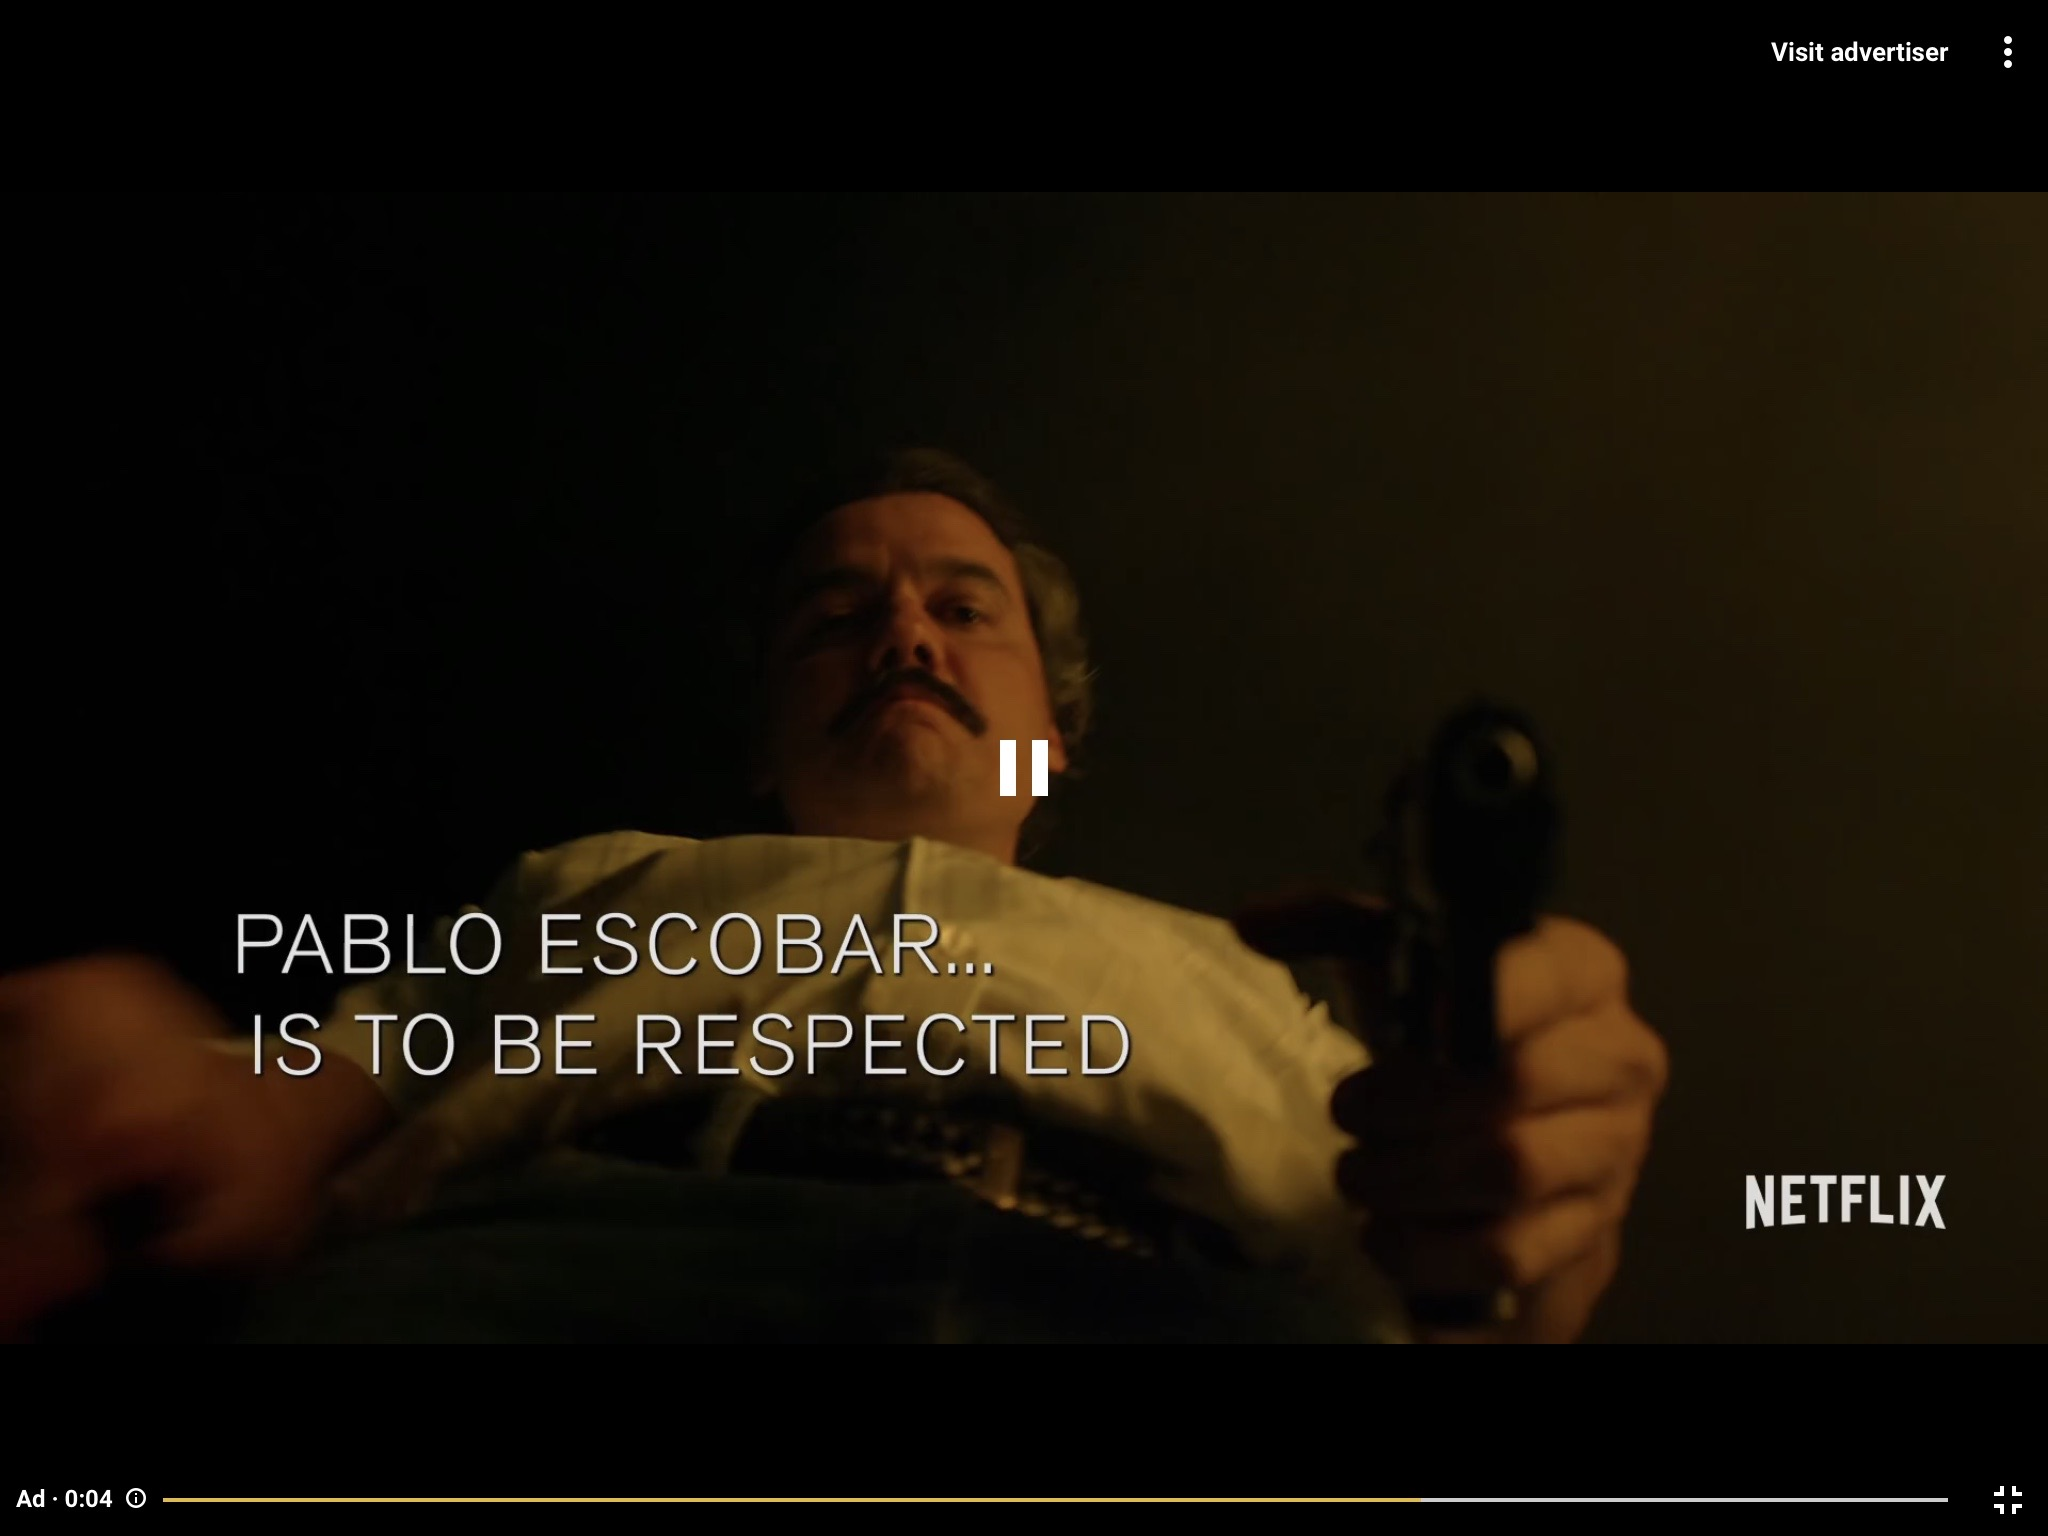 An advertisement on Netflix showed in the same video display window, using the same scrubber bar as the main content.